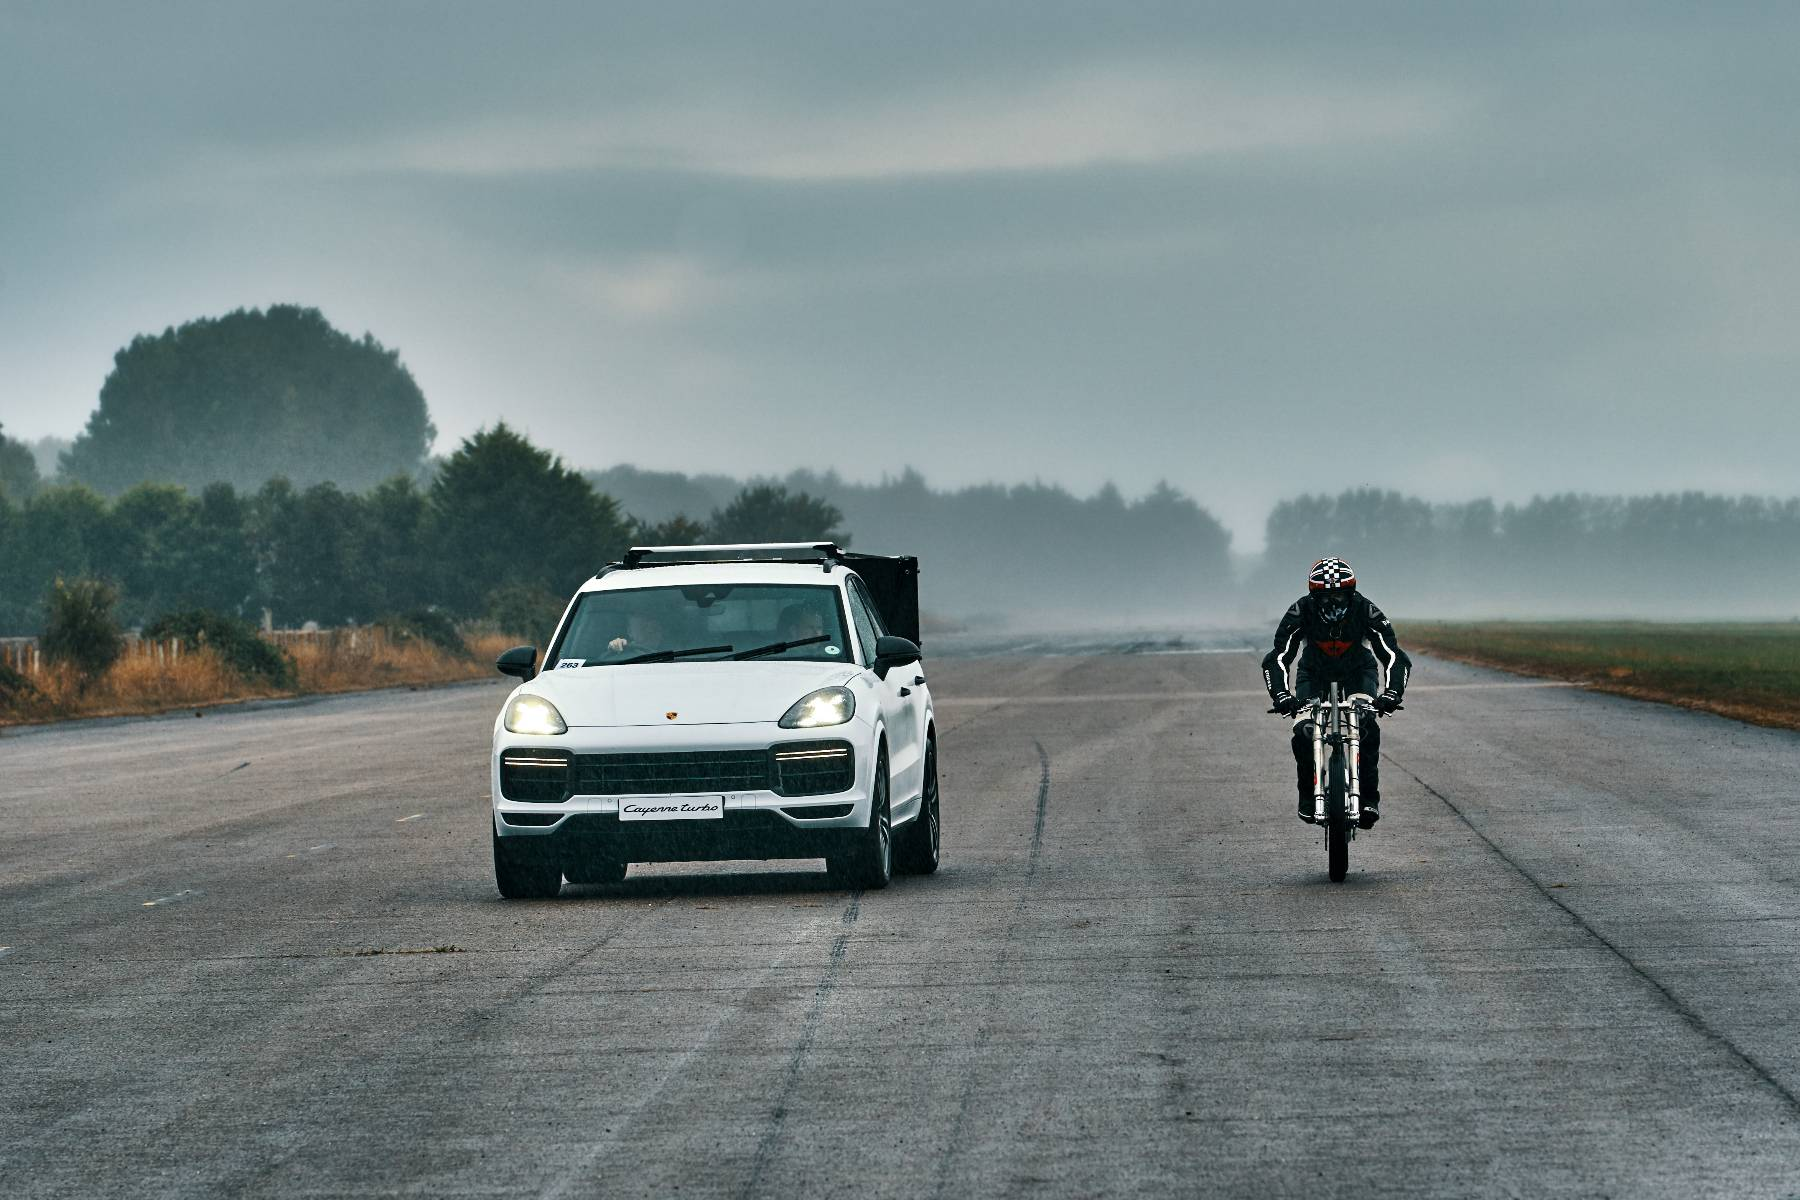 Porsche bike record run